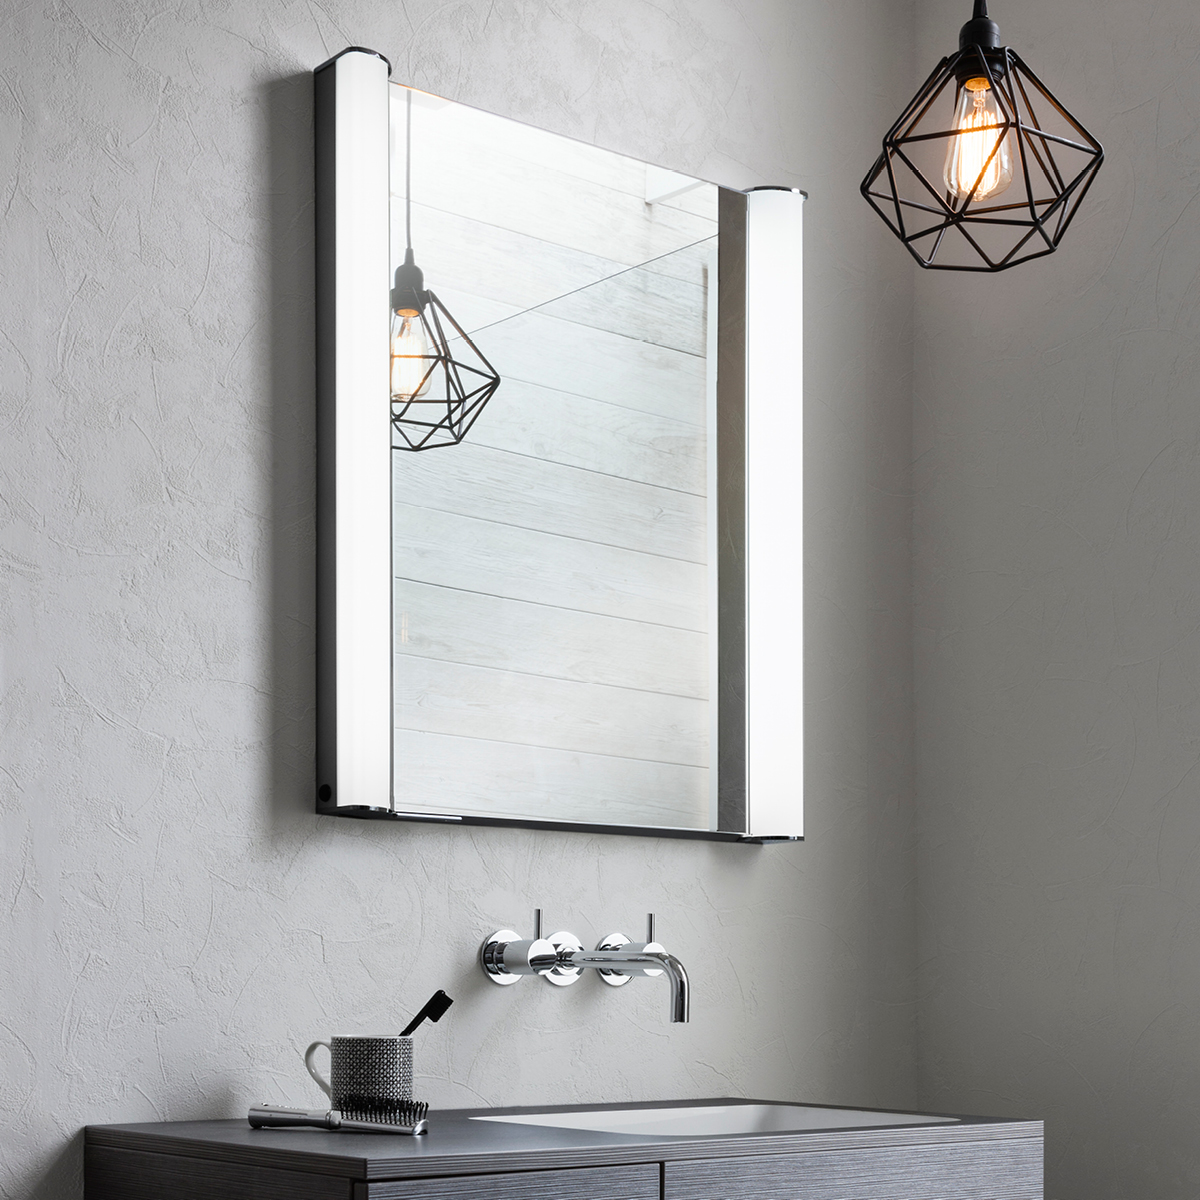 Mirrored Bathroom Cupboard Duo 600 Illuminated Mirrored Cabinet In Duo Luxury